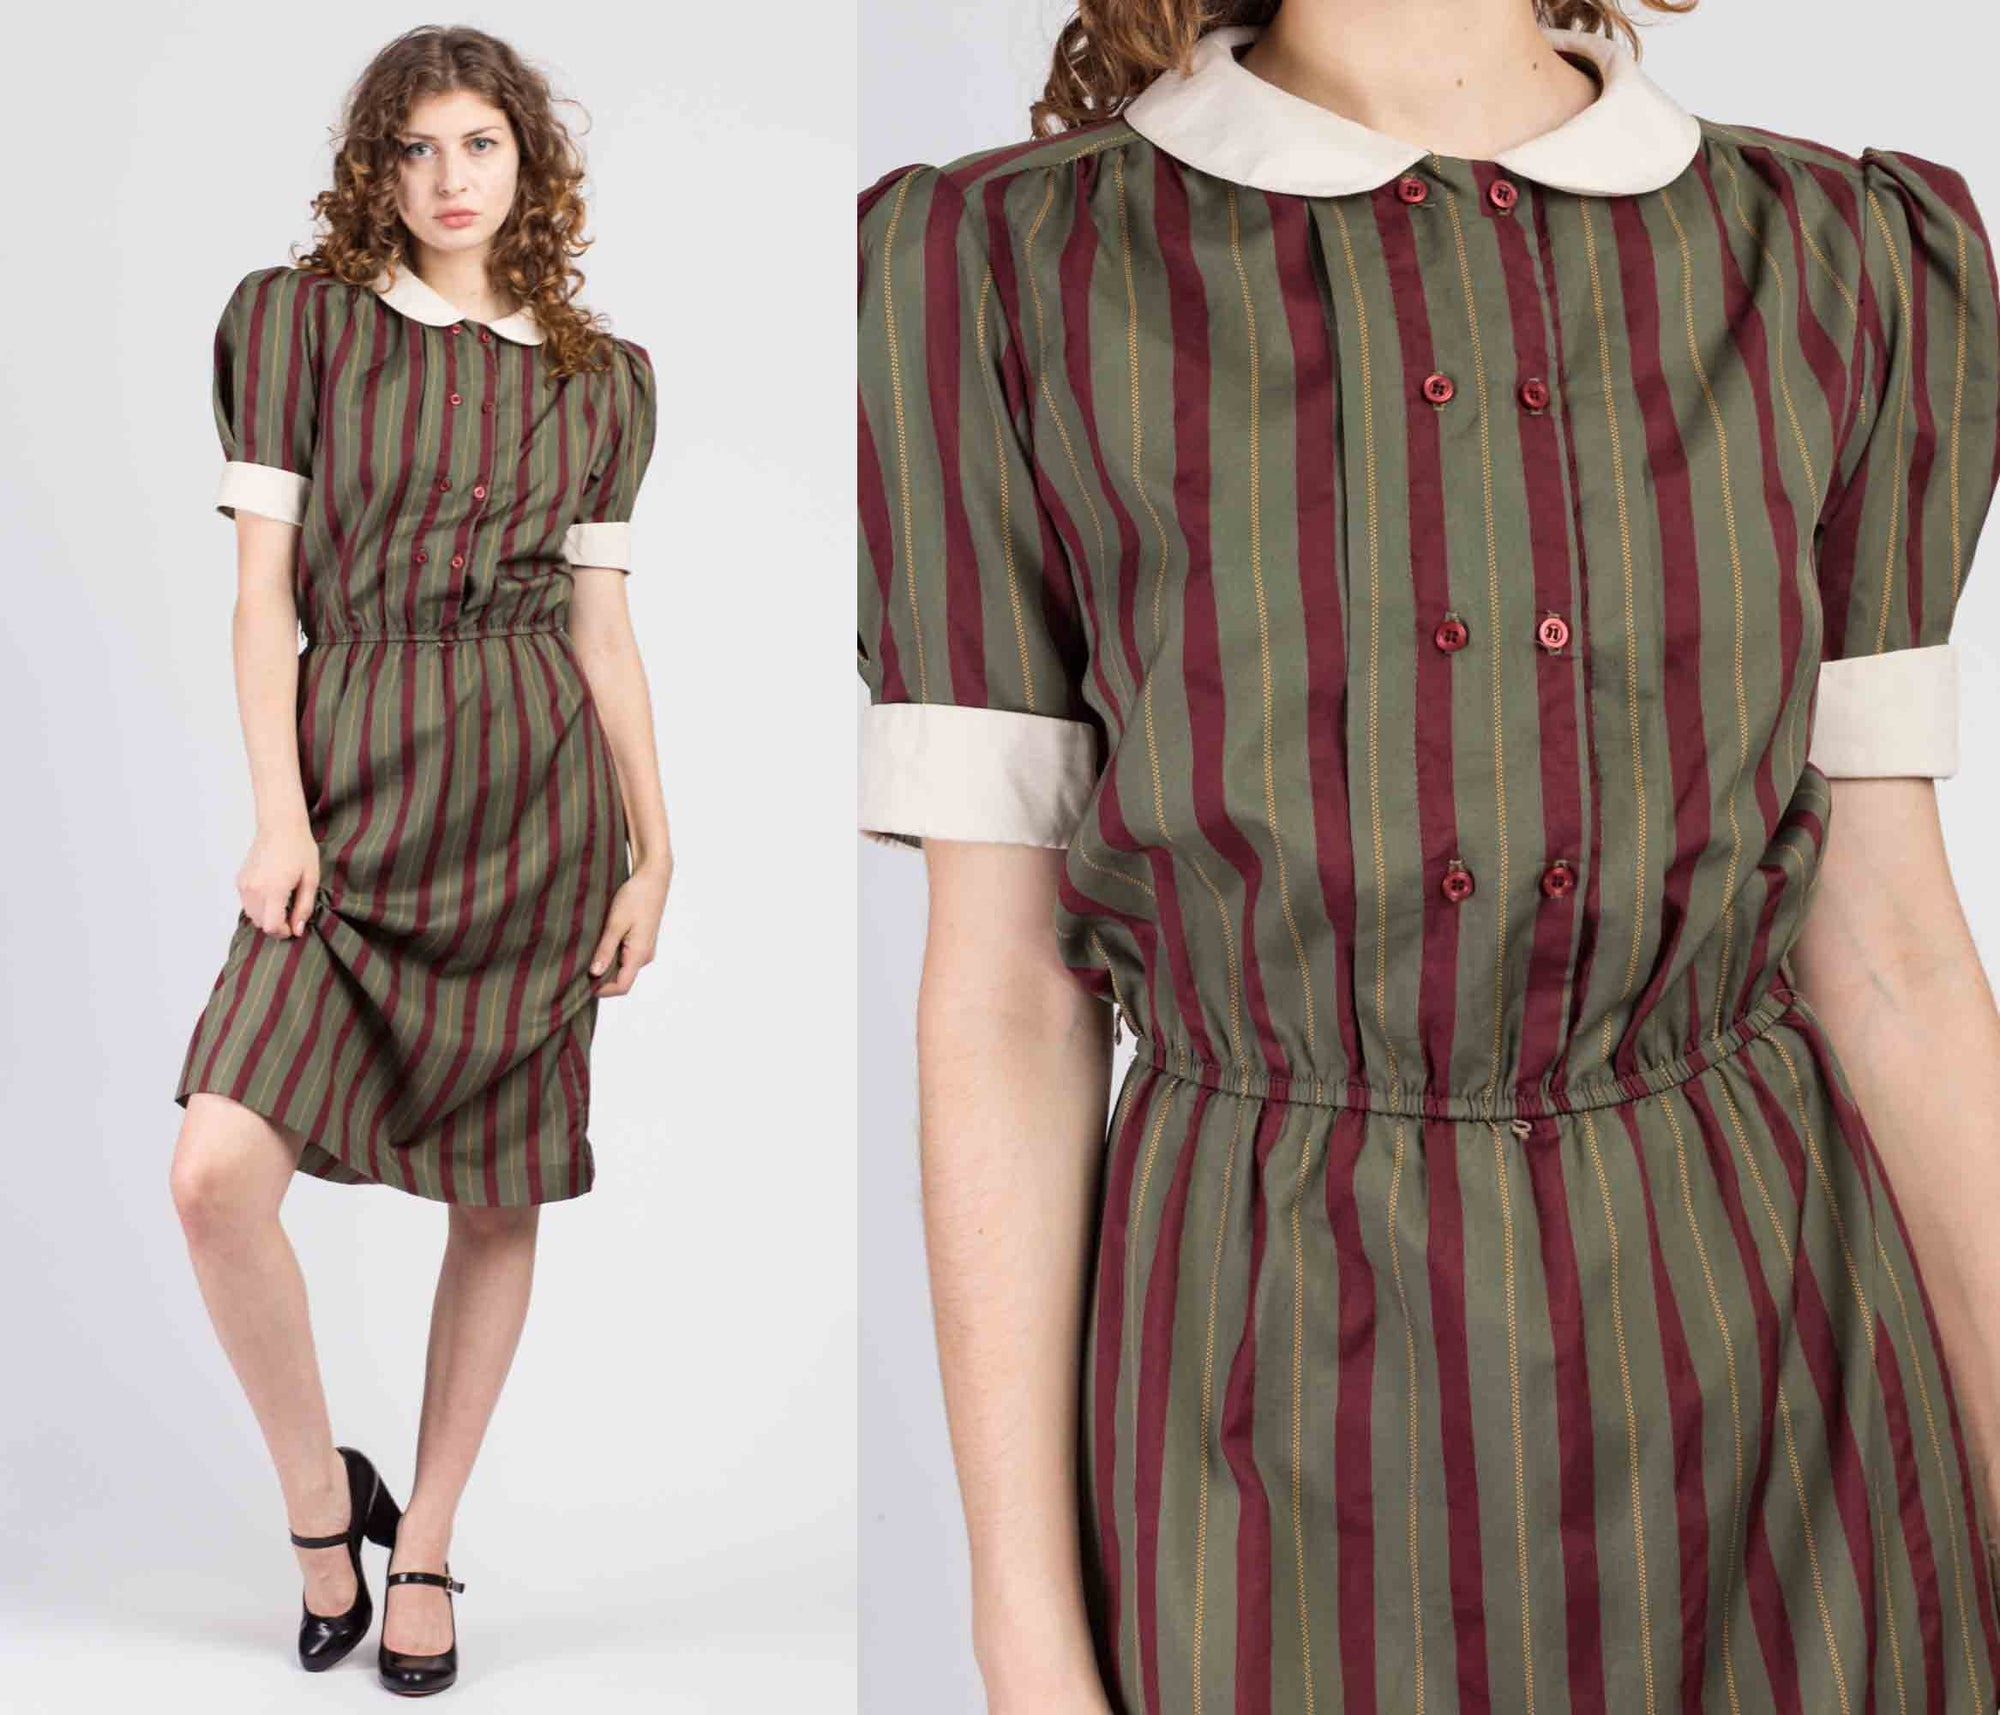 80s Striped Peter Pan Collar Dress - Medium